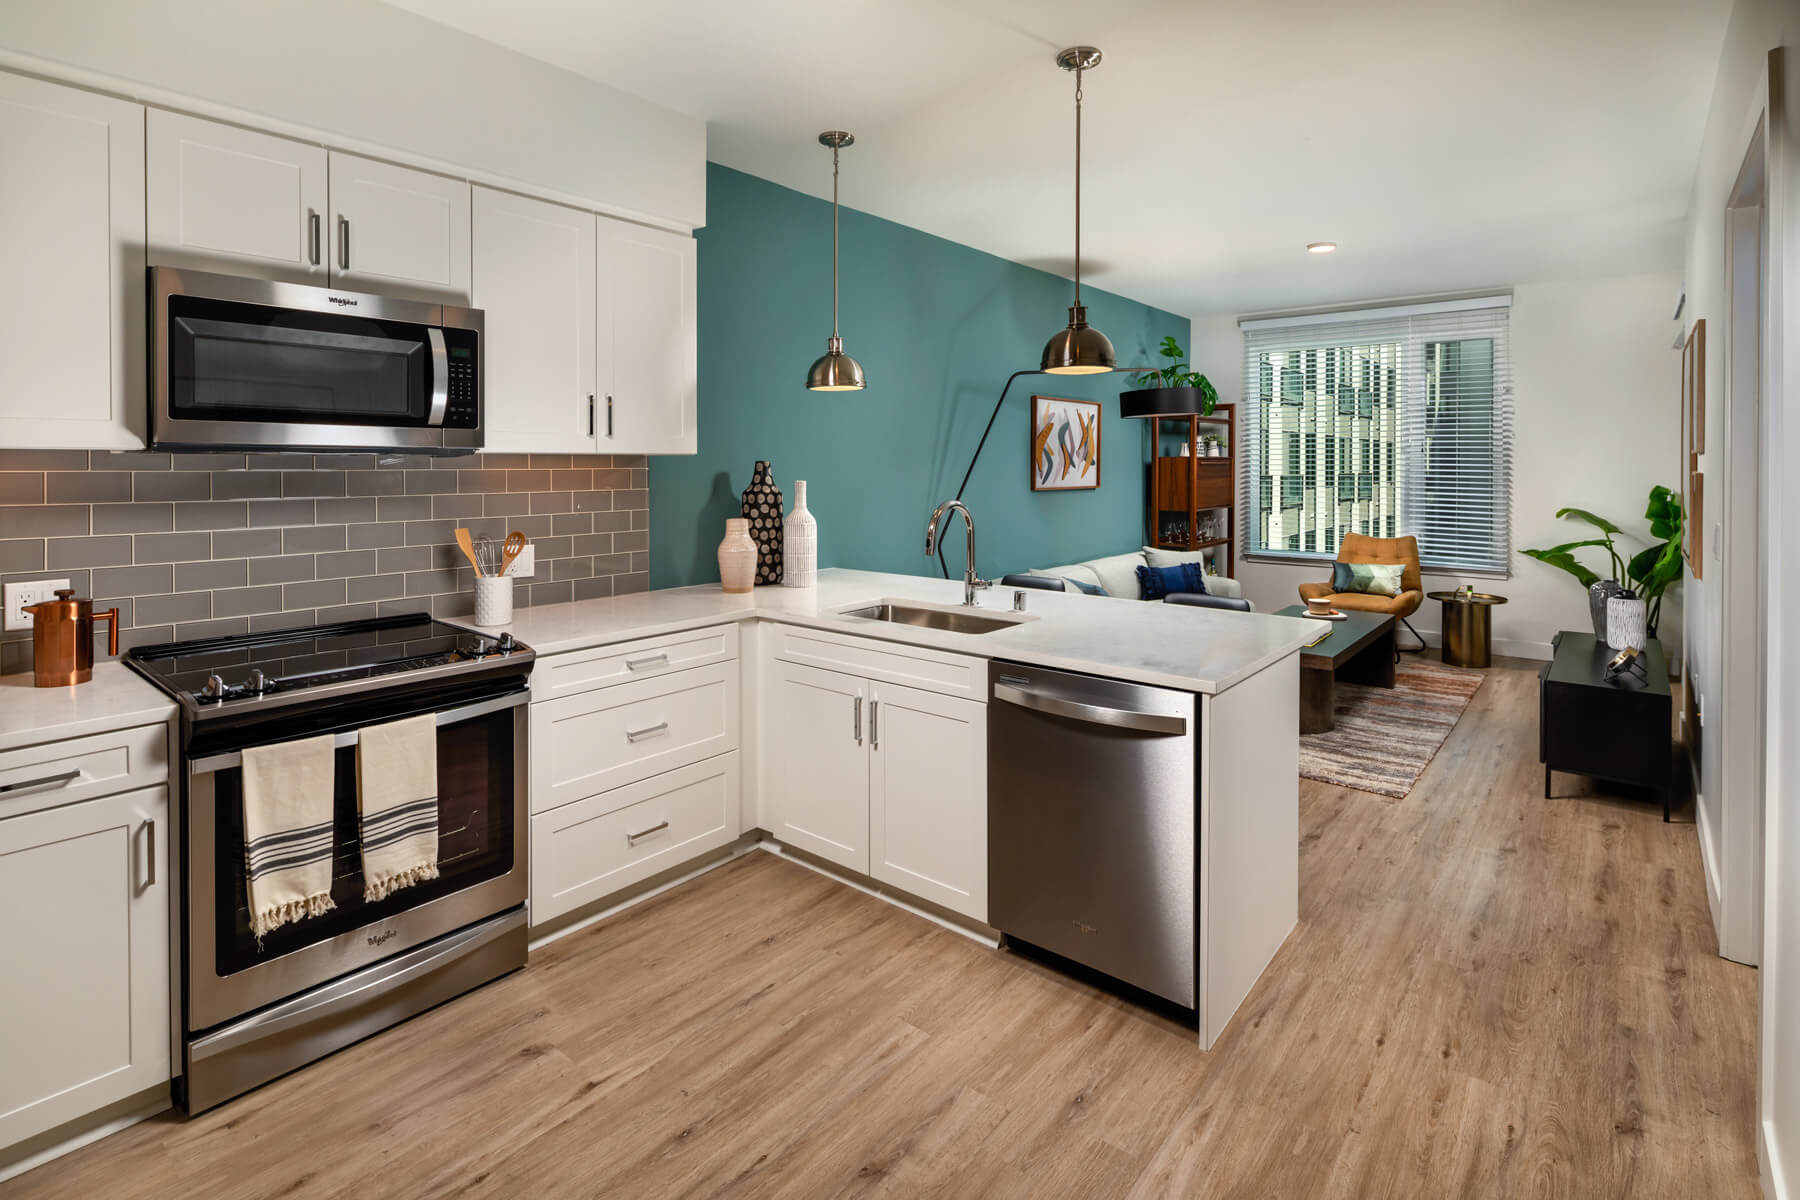 Apartments in DTLA for Rent - Sleek Kitchen With White Cabinets, Quartz Countertops, Stainless Steel Appliances, and Gray Subway Tile